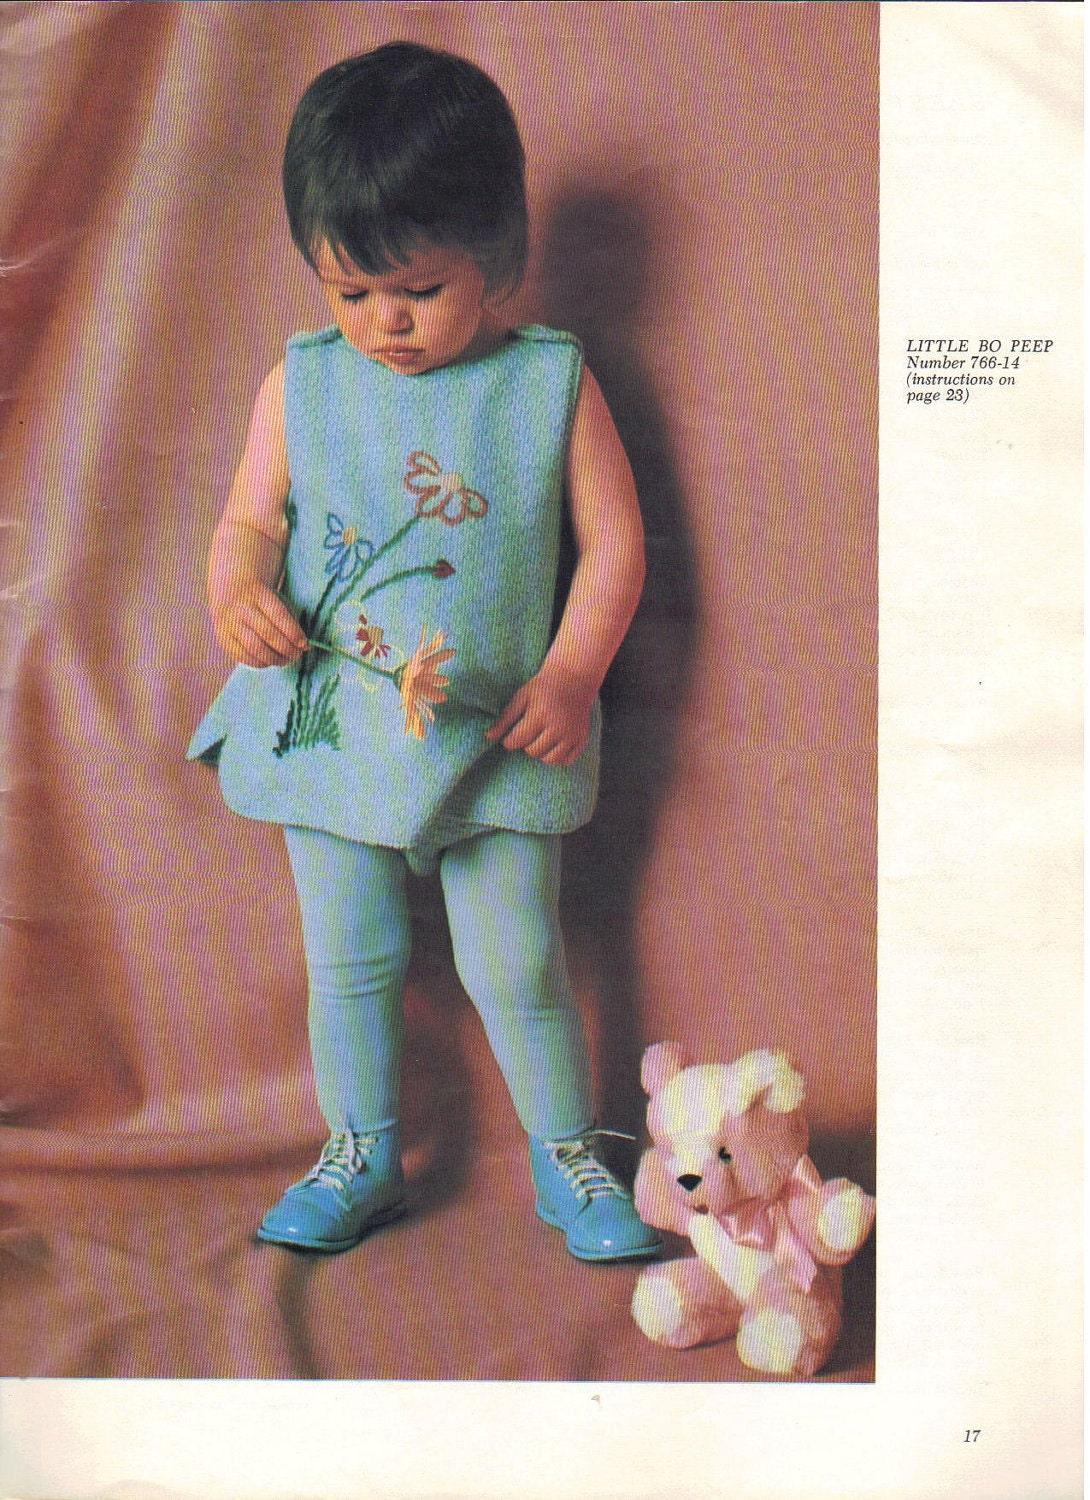 Retro 1960s Pattern Book for Crochet Knitting Baby Children Fashion Vintage Knit Pants Sweater Blanket Hats Instructions - AdeleBeeAnnPatterns